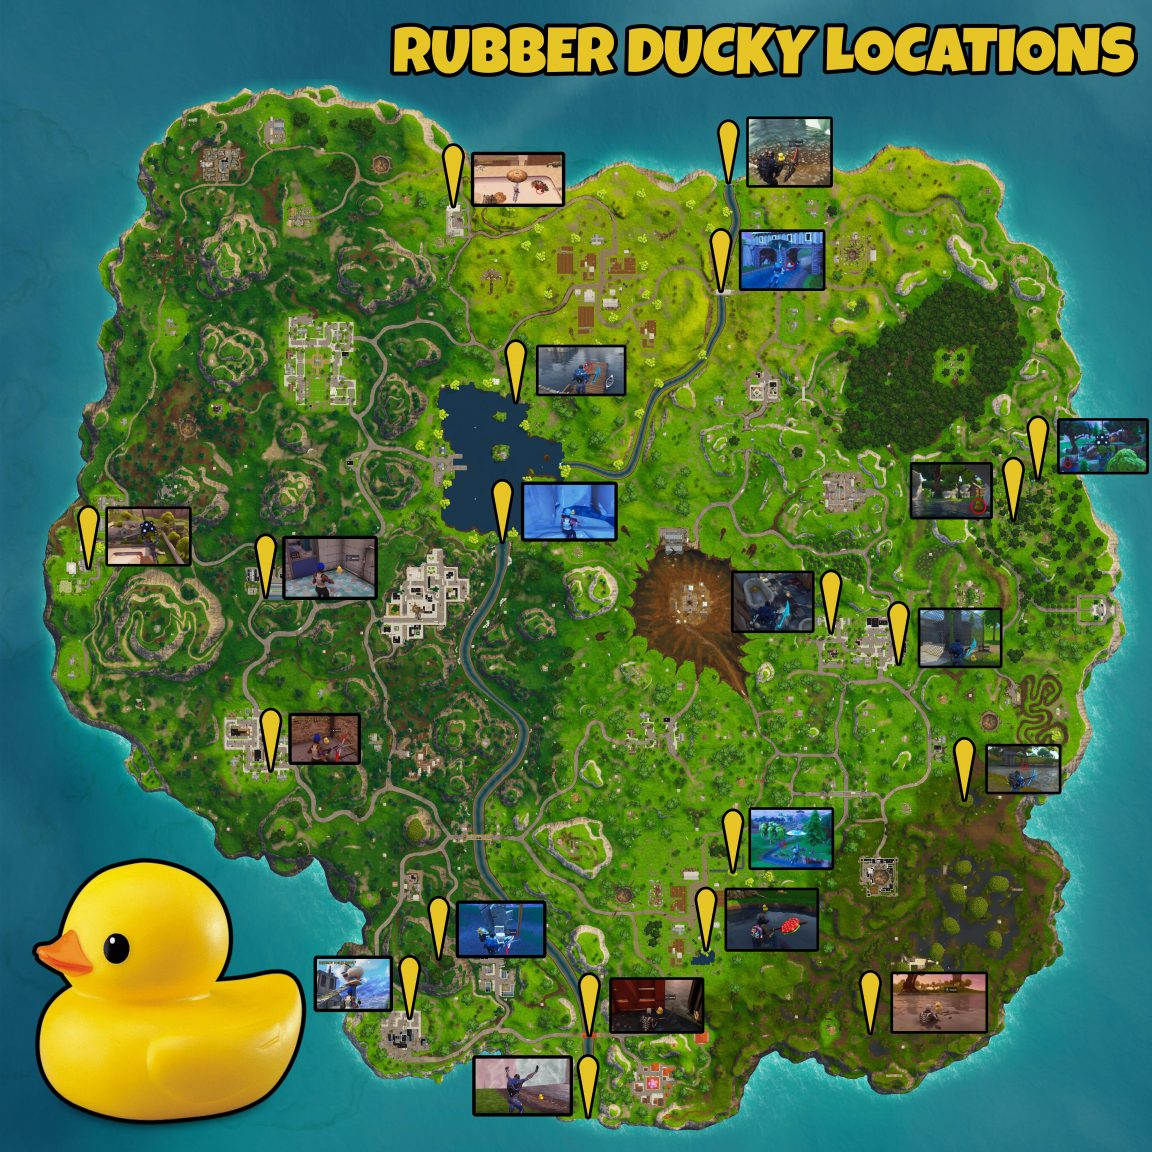 Fortnite Duck Locations: Here Are the Rubber Duck Locations